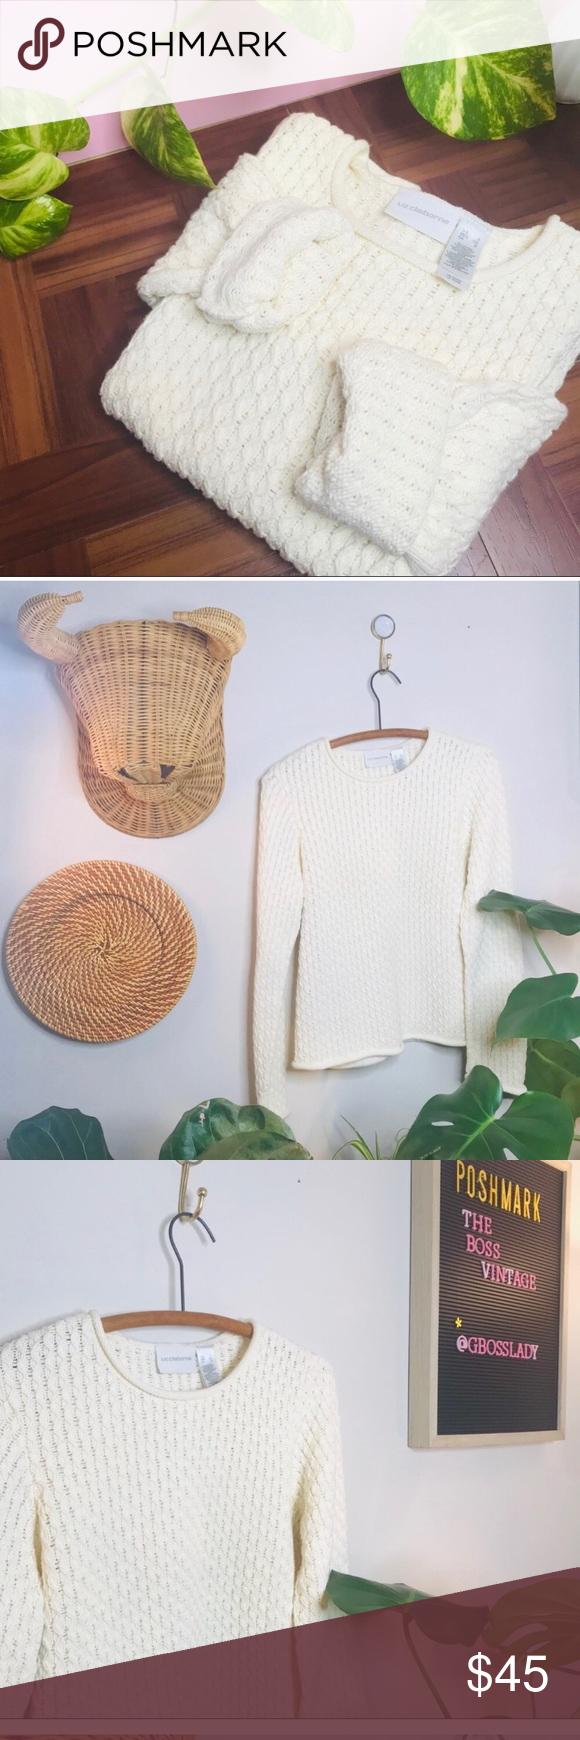 vtg vsco fisherman chunky knit white sweater Vintage Retro 90s Chunky Fisherman Crop Sweater • Tags say small but would fit a XS nicely as an oversi...